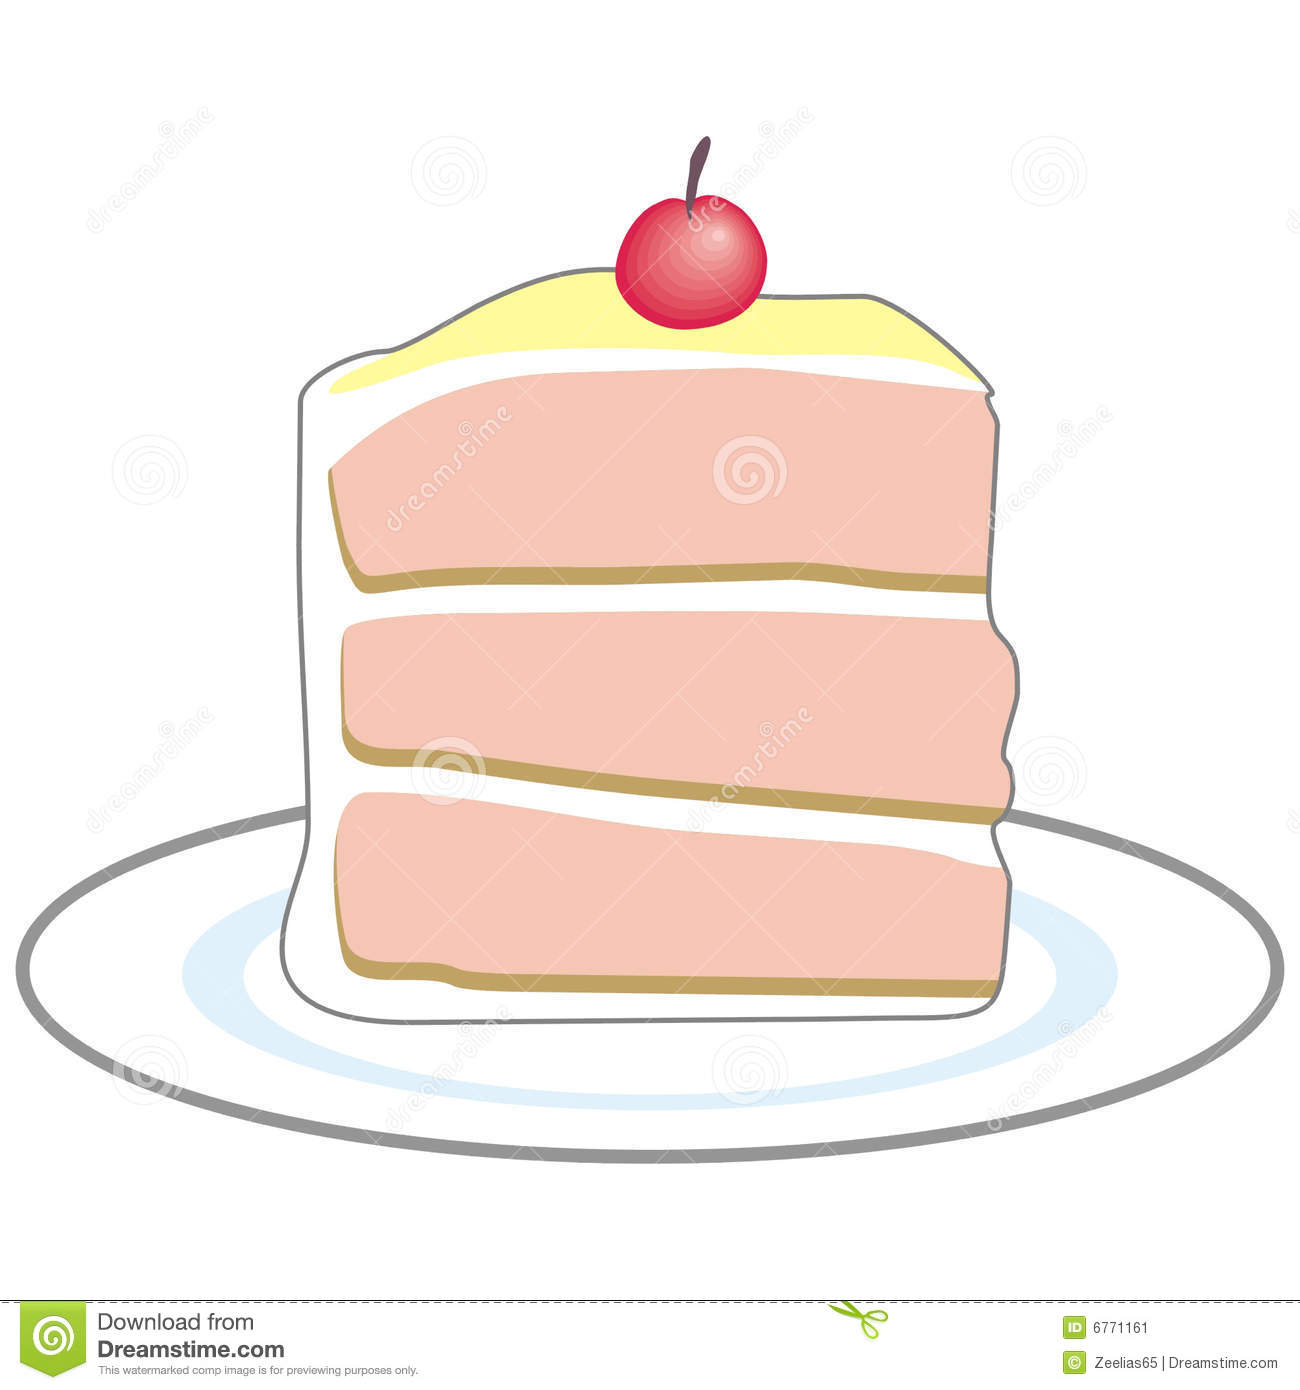 Piece Of Cake Clipart Piece Of Cake Clip-Piece Of Cake Clipart Piece Of Cake Clip Art Piece-17